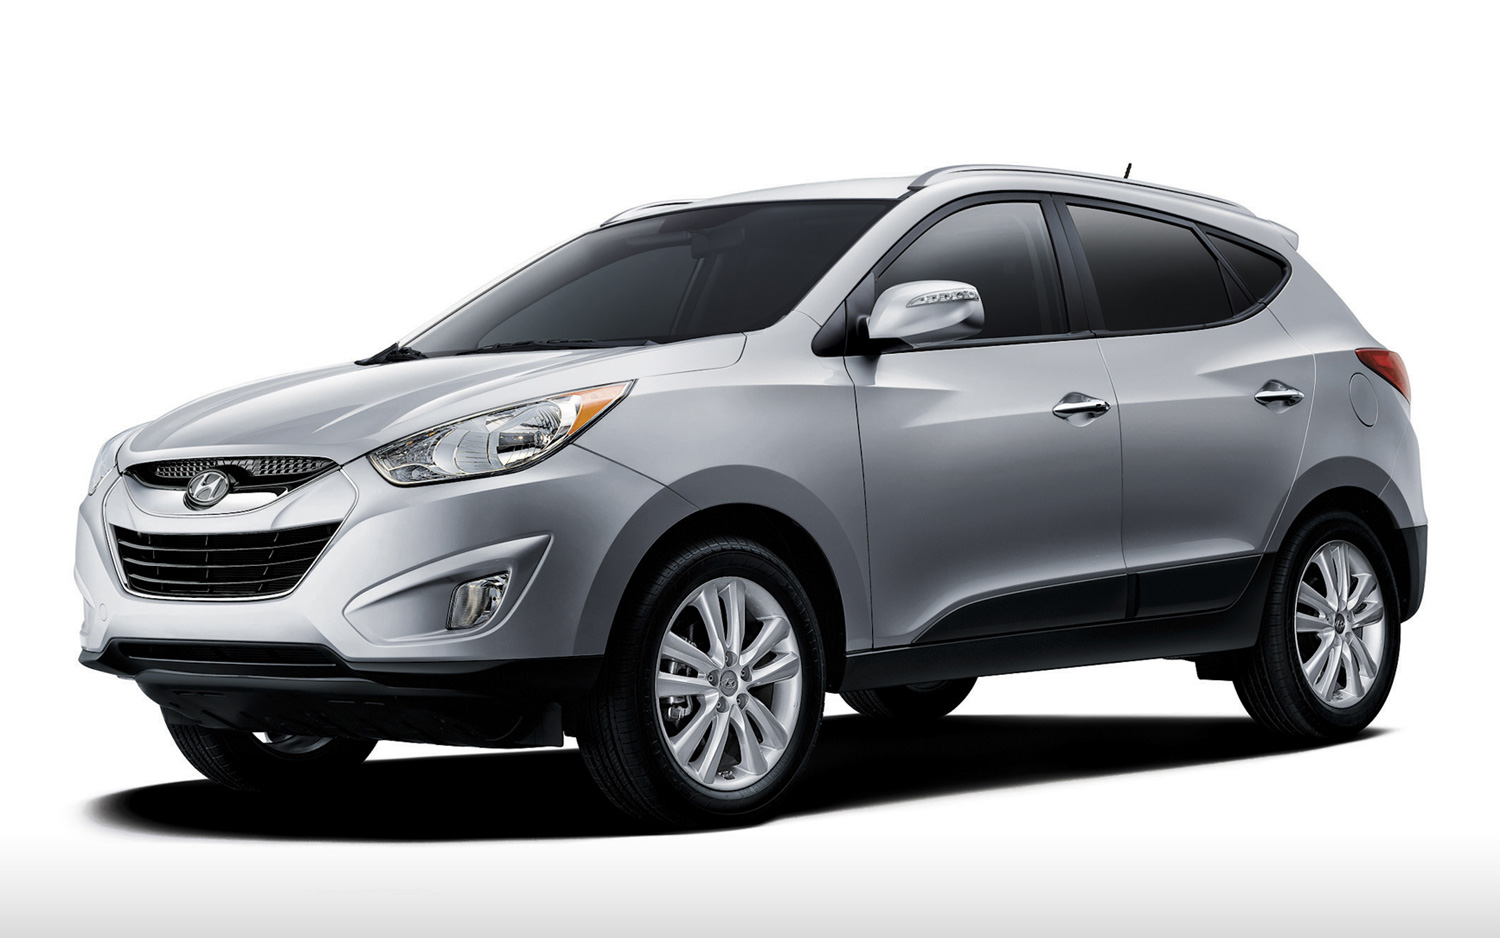 Hyundai Cars 2014 >> 2014 Hyundai Tucson | New cars reviews